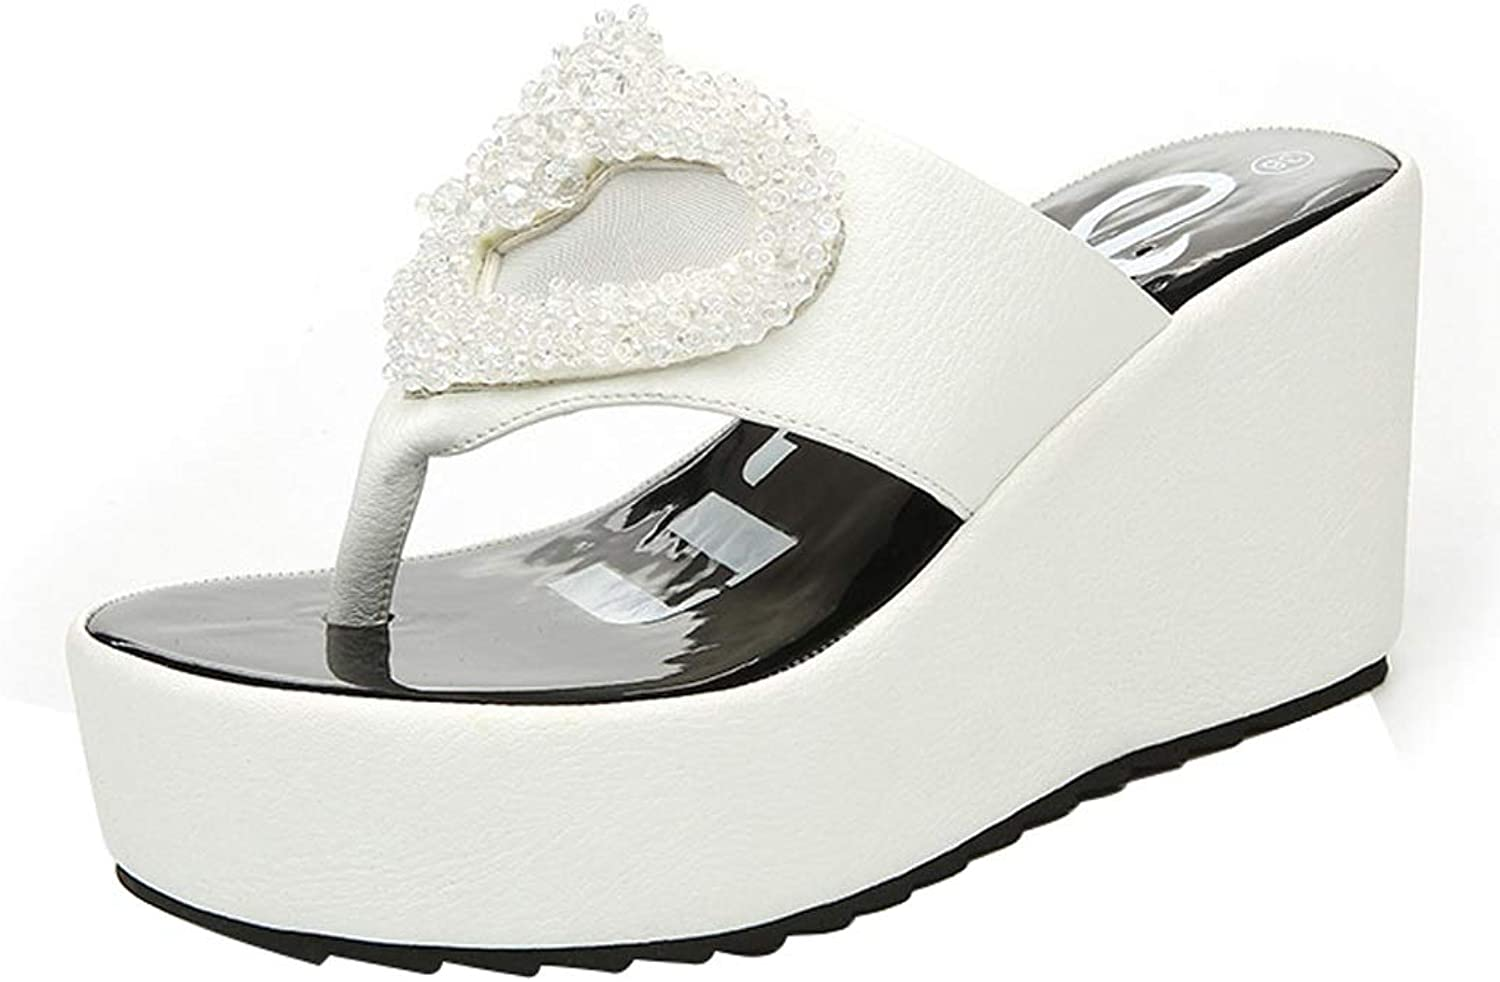 Sandals and Slippers Women Wear Summer Fashion High-Heeled Flip-Flops Platform Slippers Summer Wear Beach shoes Beach (color   White, Size   35-225mm)